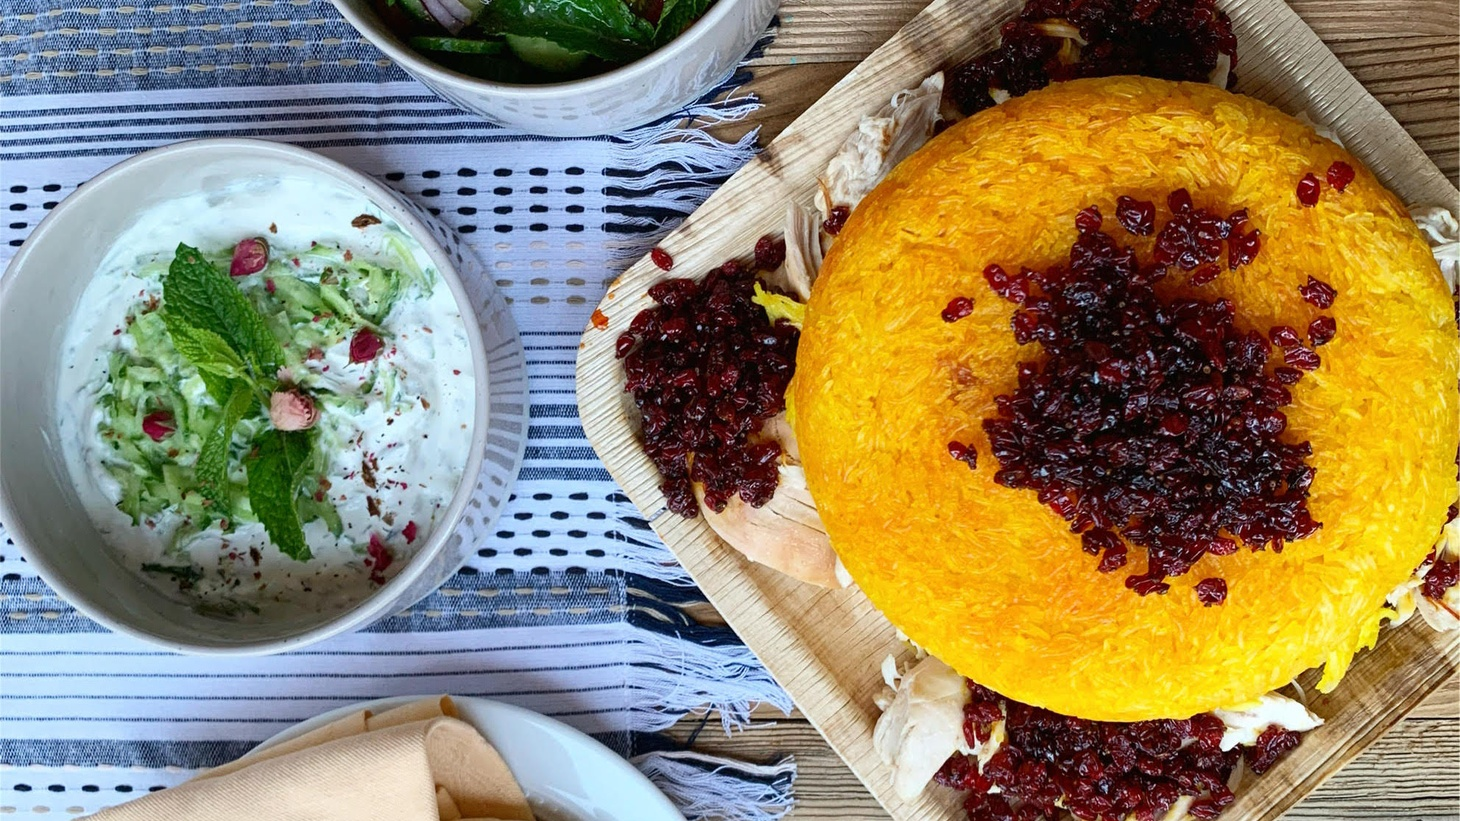 Tahdigs are the bottom of the pot, where the crispy tops of the domes form. The Persian dish has found a wide audience and is showcased at Golden Rice Co. operated by Farah and Sophia Parsa.